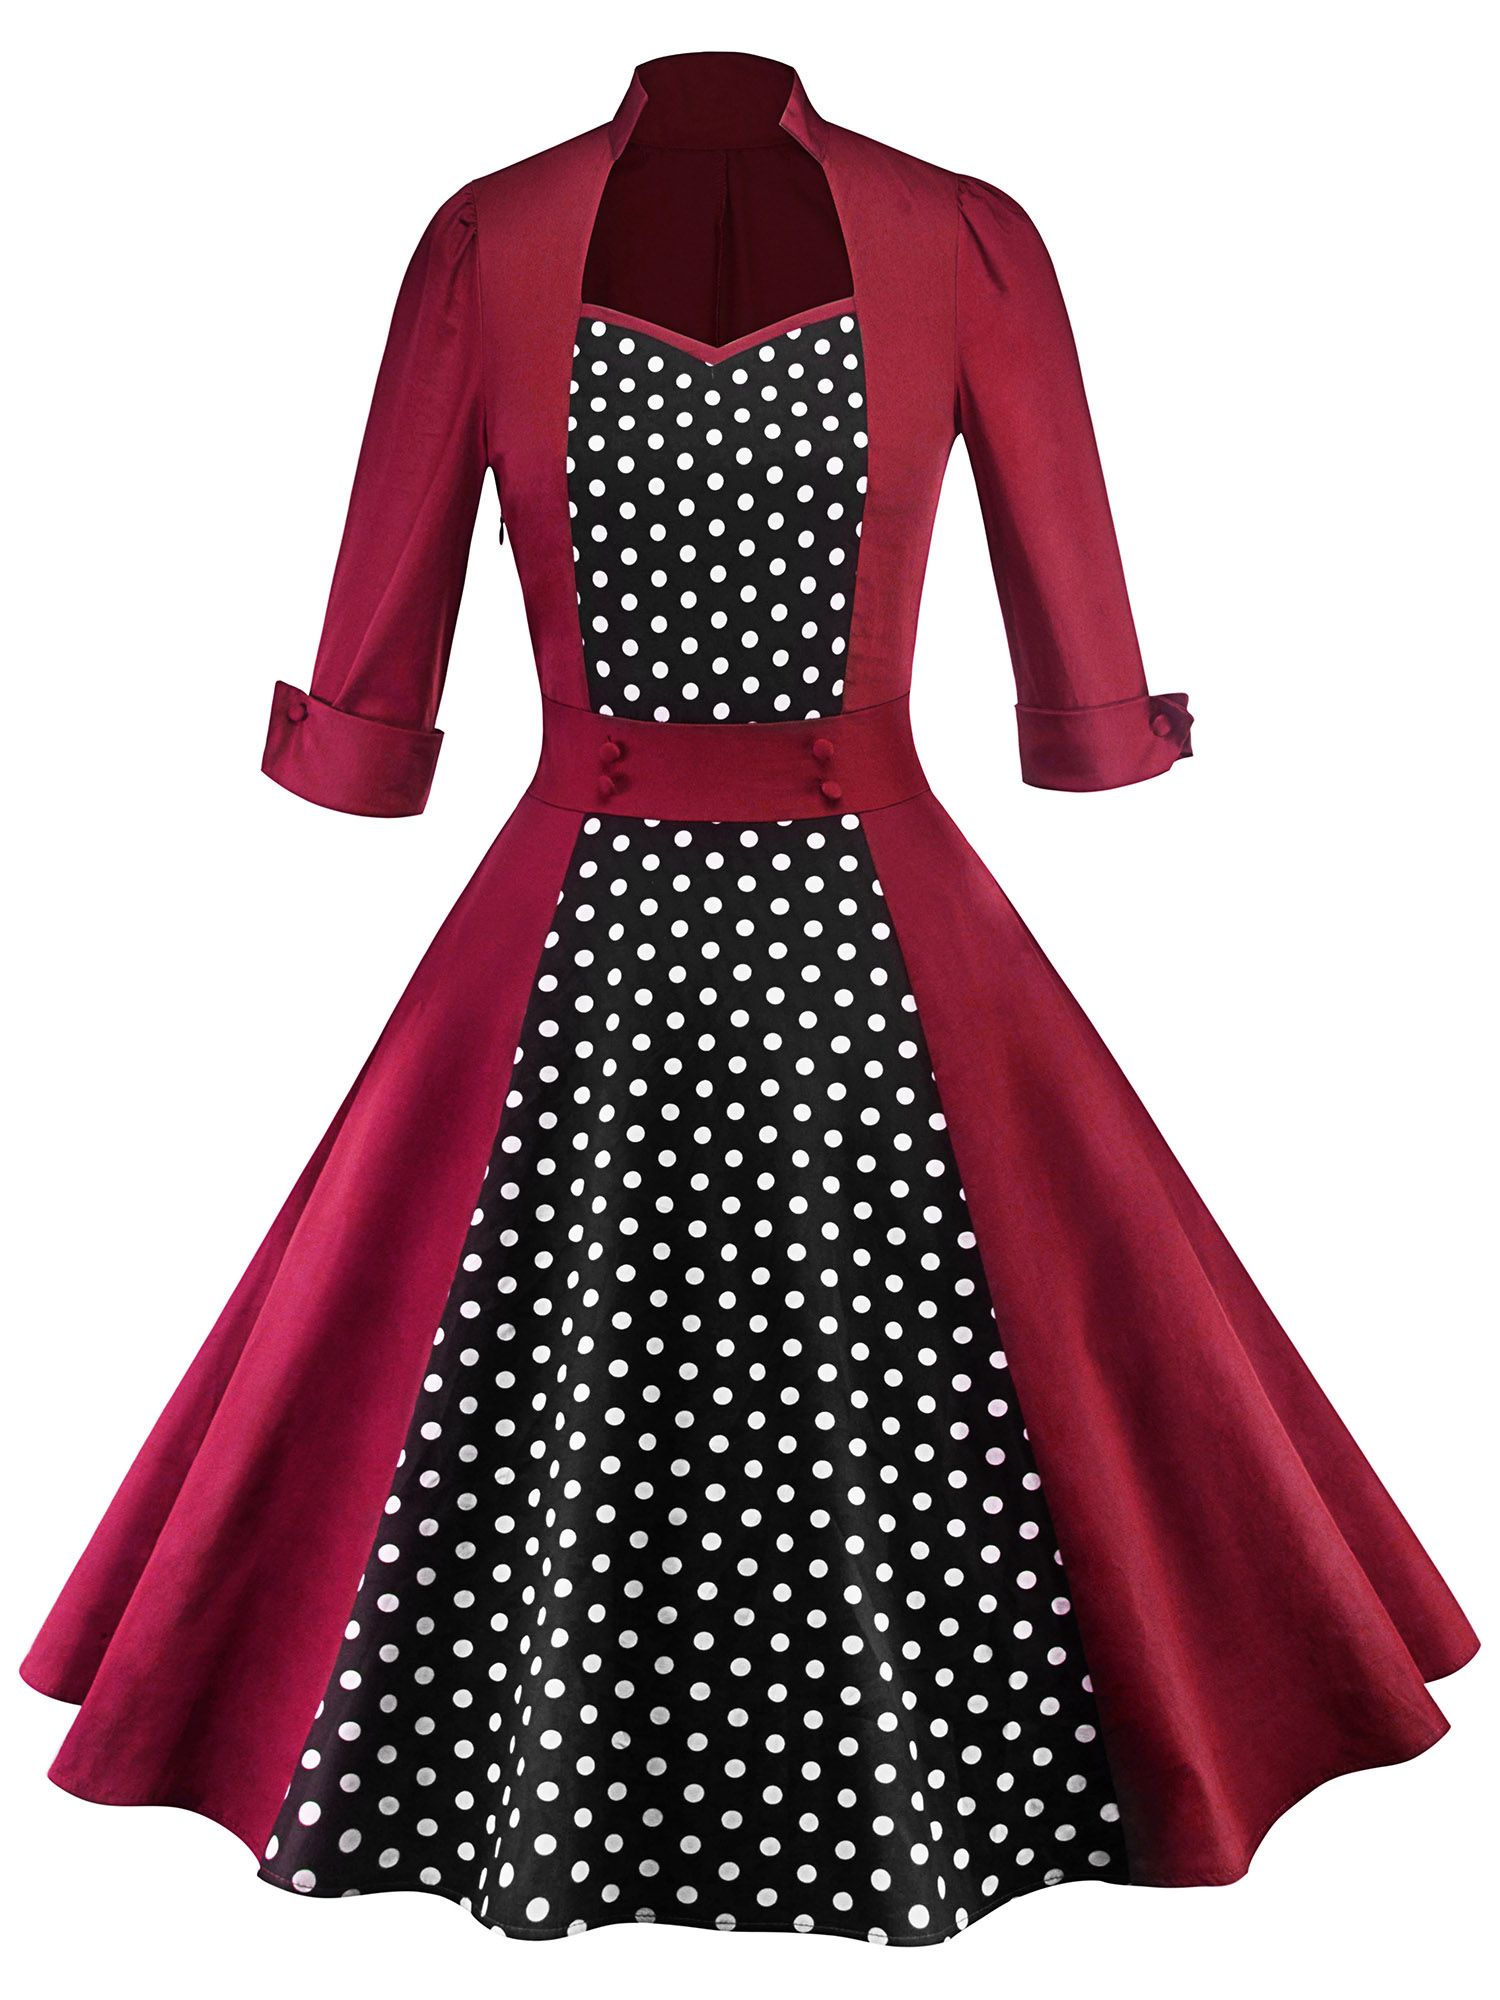 2e8cb4466cf6 50s Women Vintage Polka Dot Rockabilly Swing Pinup Evening Party Housewife  Dress Long Sleeve#Dot